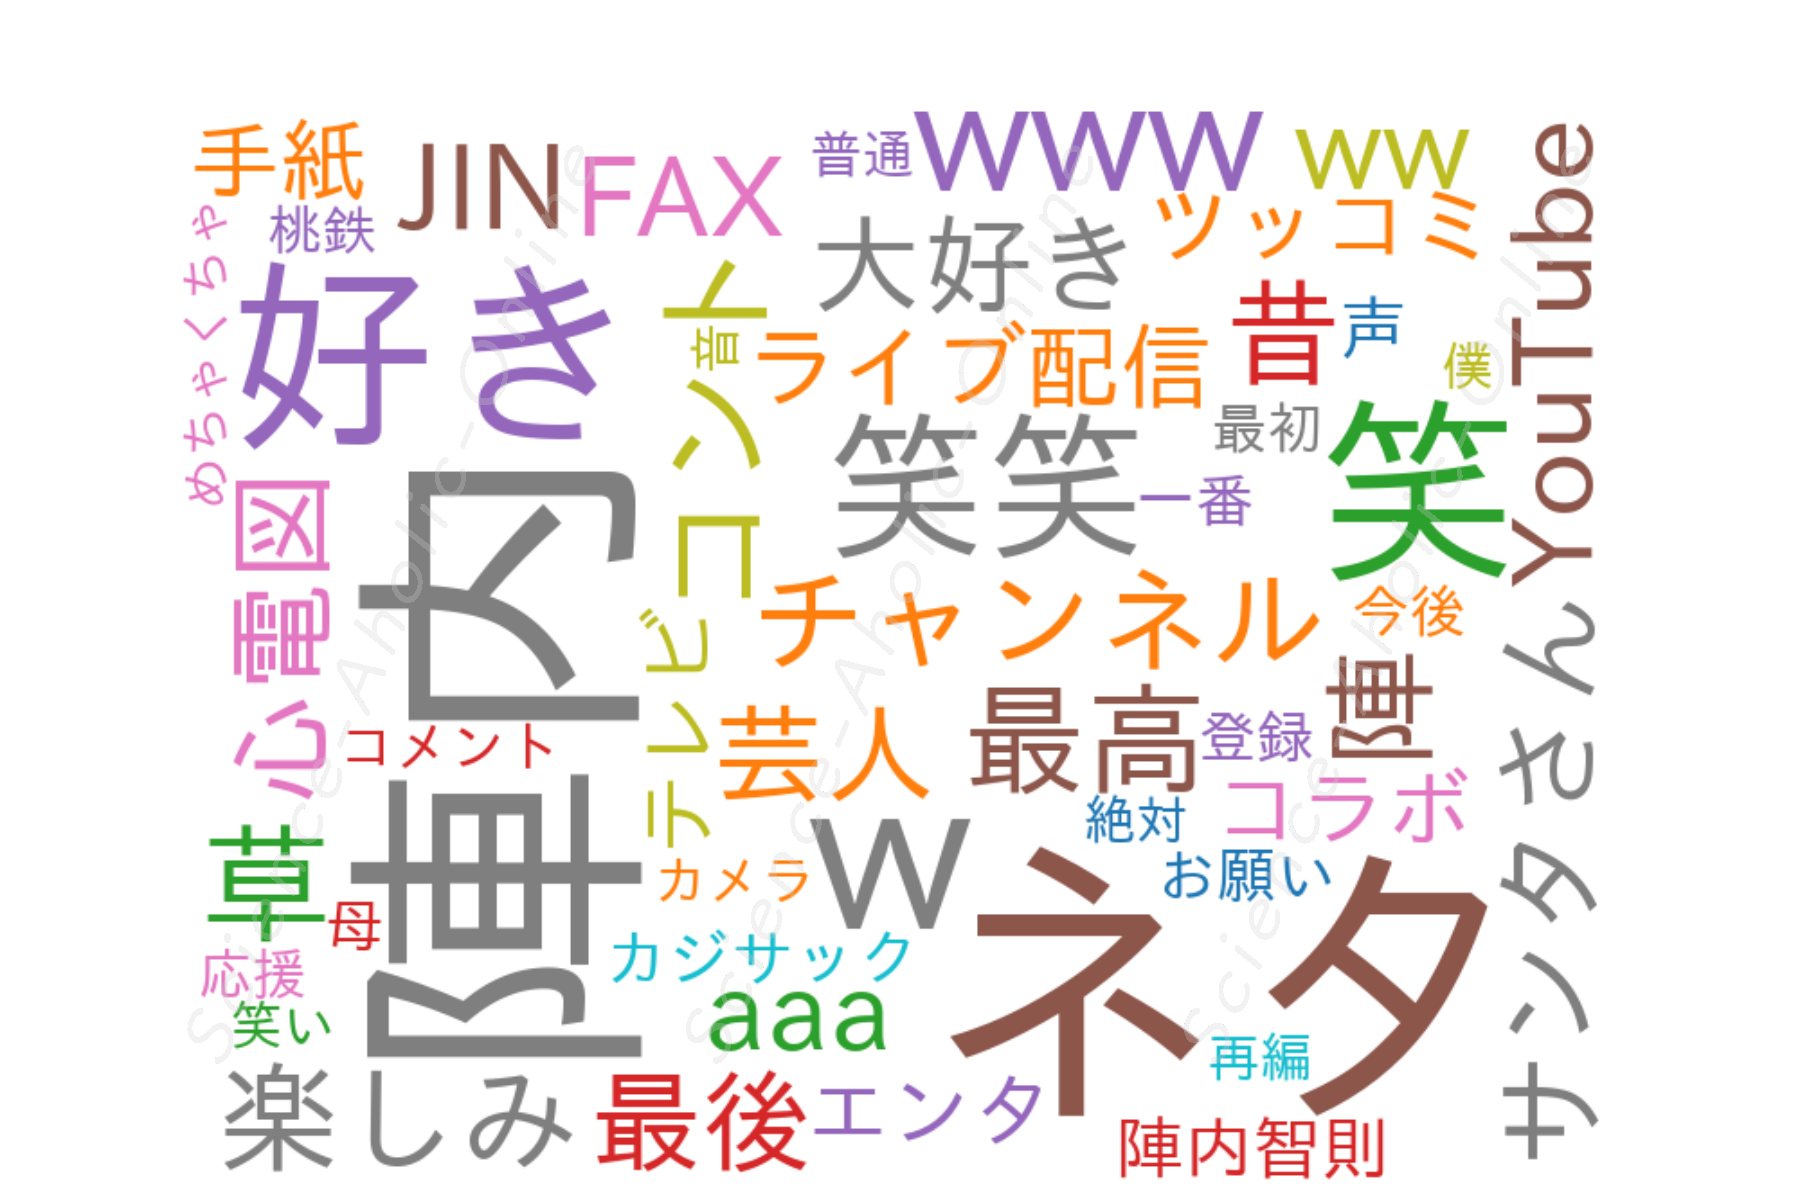 https://science-aholic-online.com/wp-content/uploads/2020/08/wordcloud_陣内智則のネタジン.png